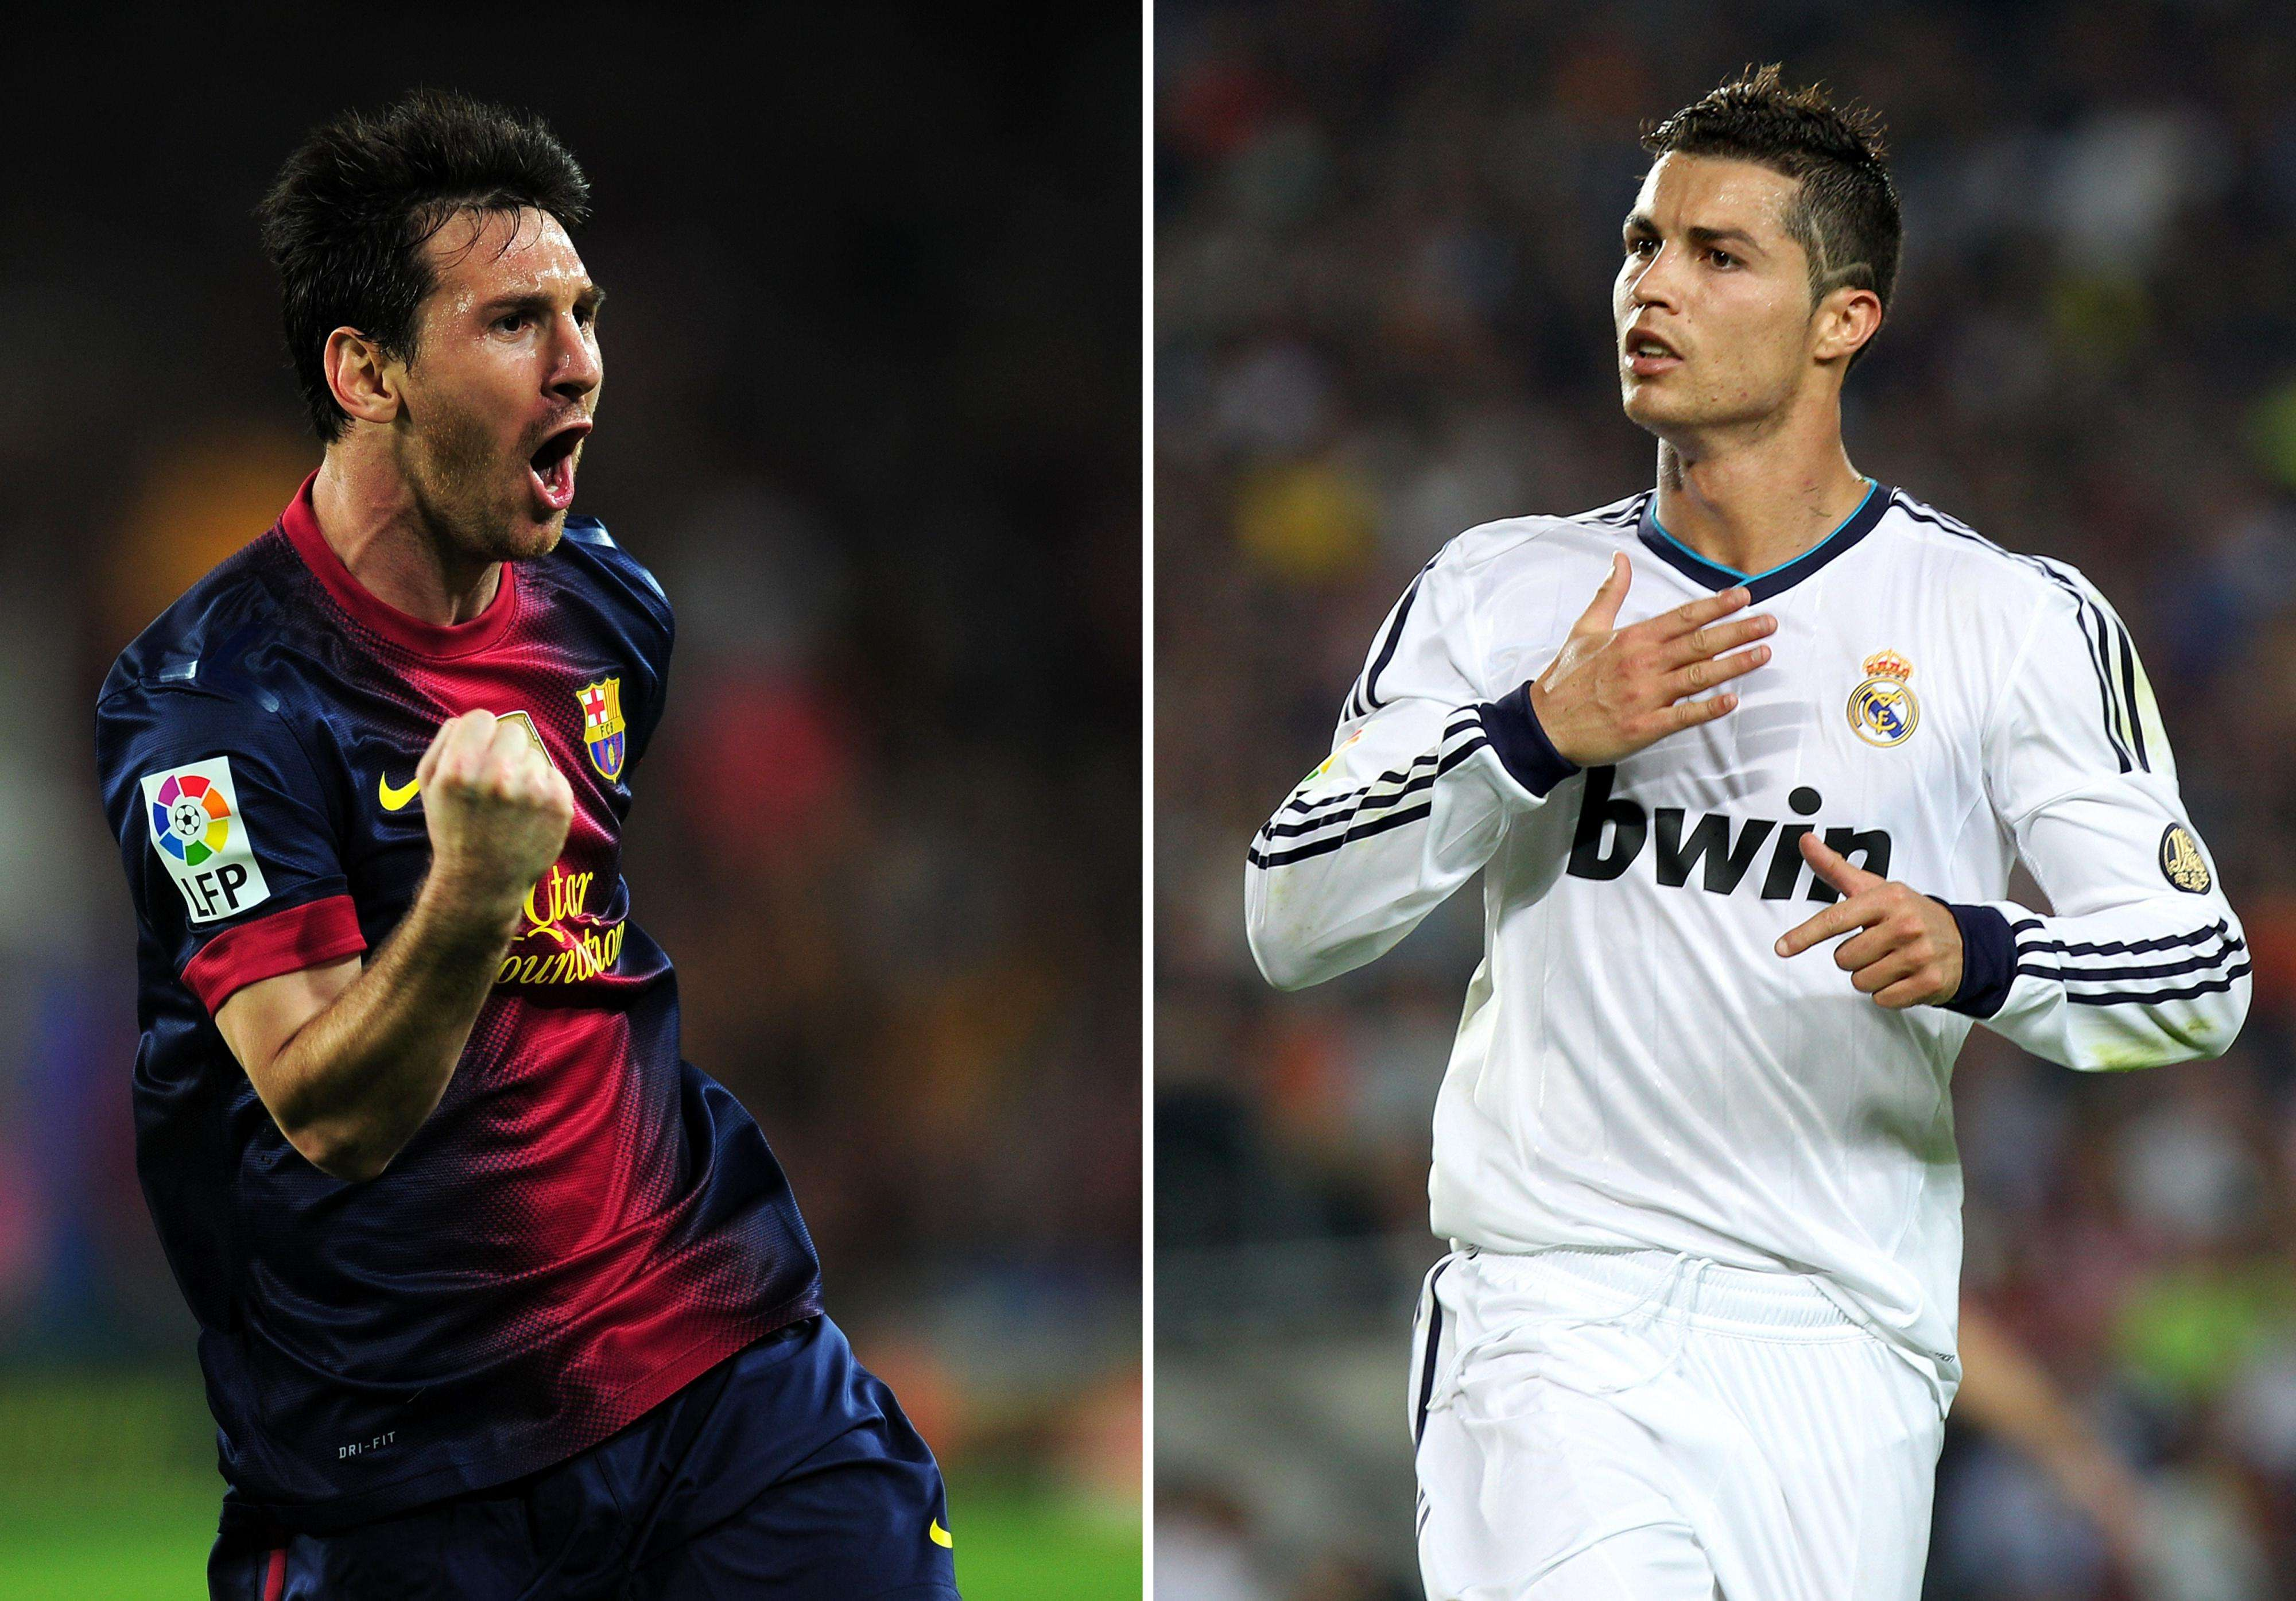 Barça-Madrid, the greatest national rivalries